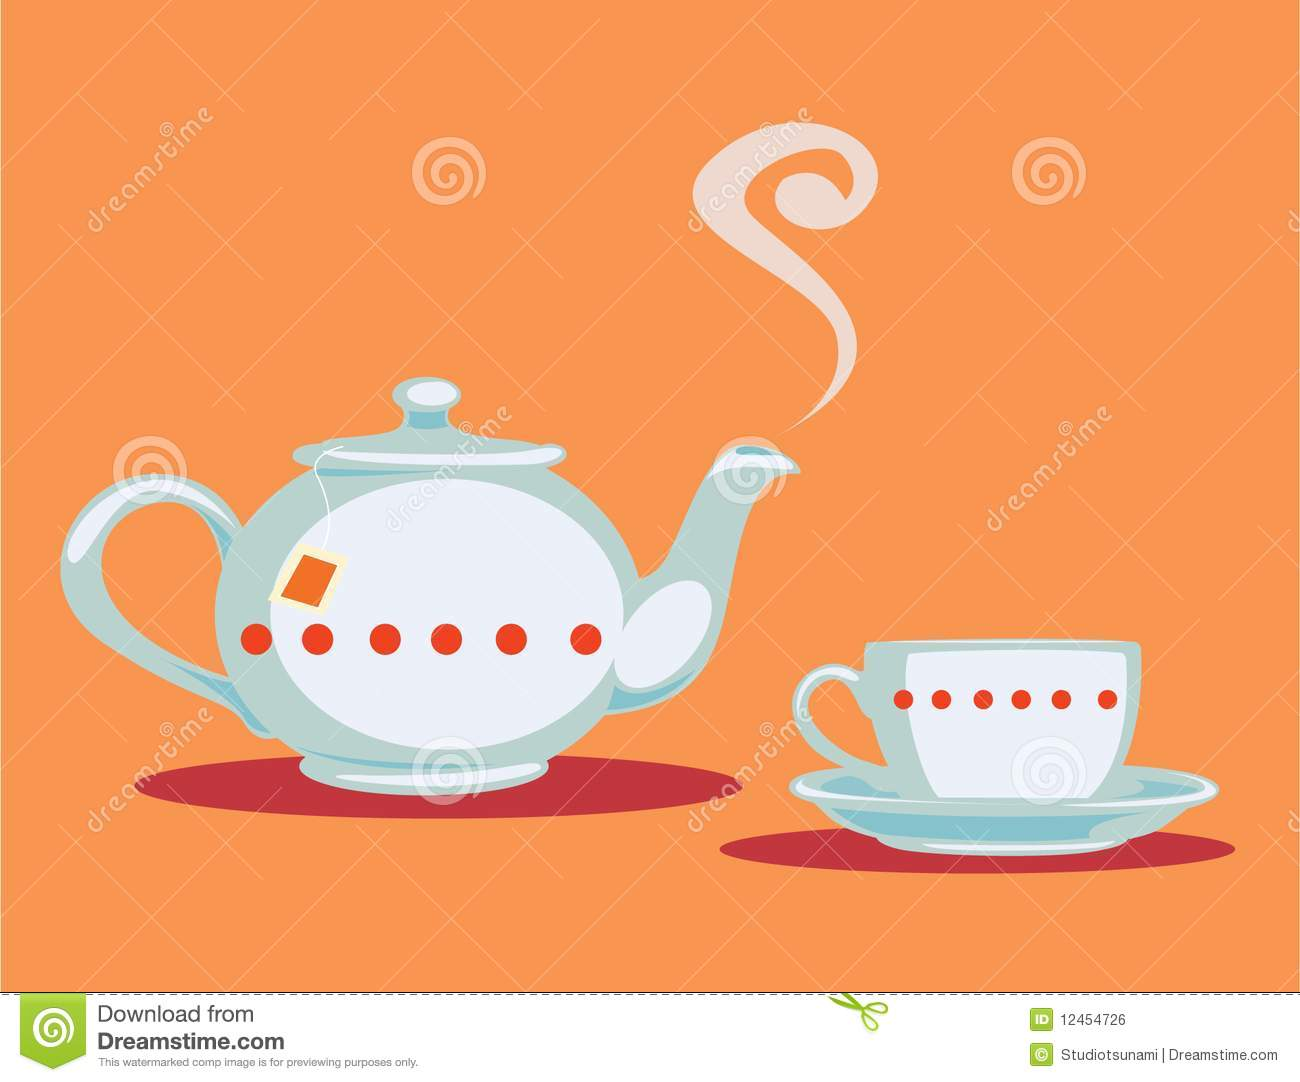 Teapot And Teacup Royalty Free Stock Image - Image: 12454726